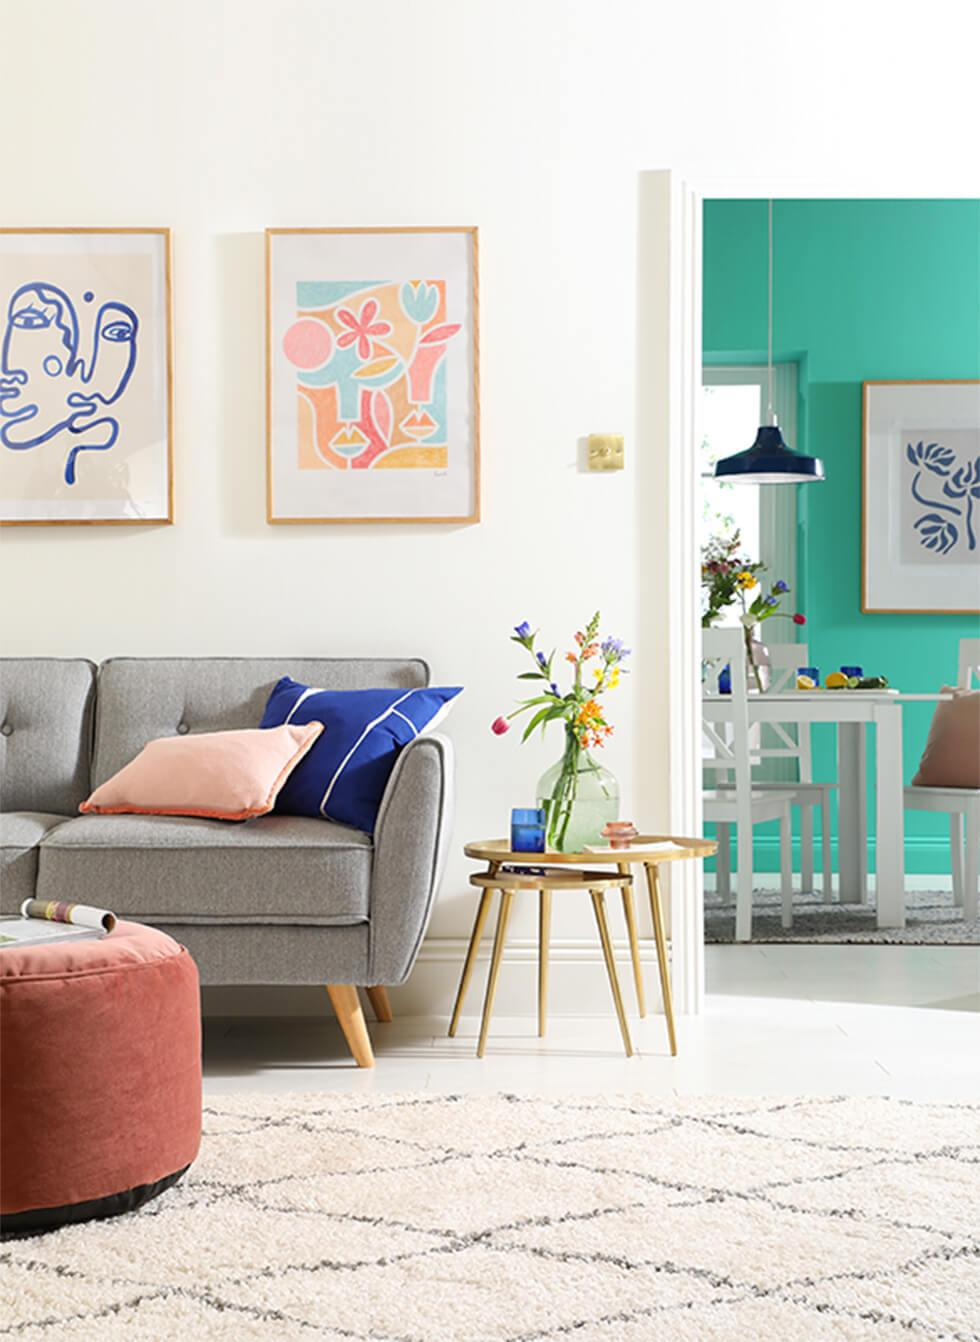 Neutral living room with grey sofa, velvet pouffe, pink and blue cushions and flowers, with a view to a turquoise dining room